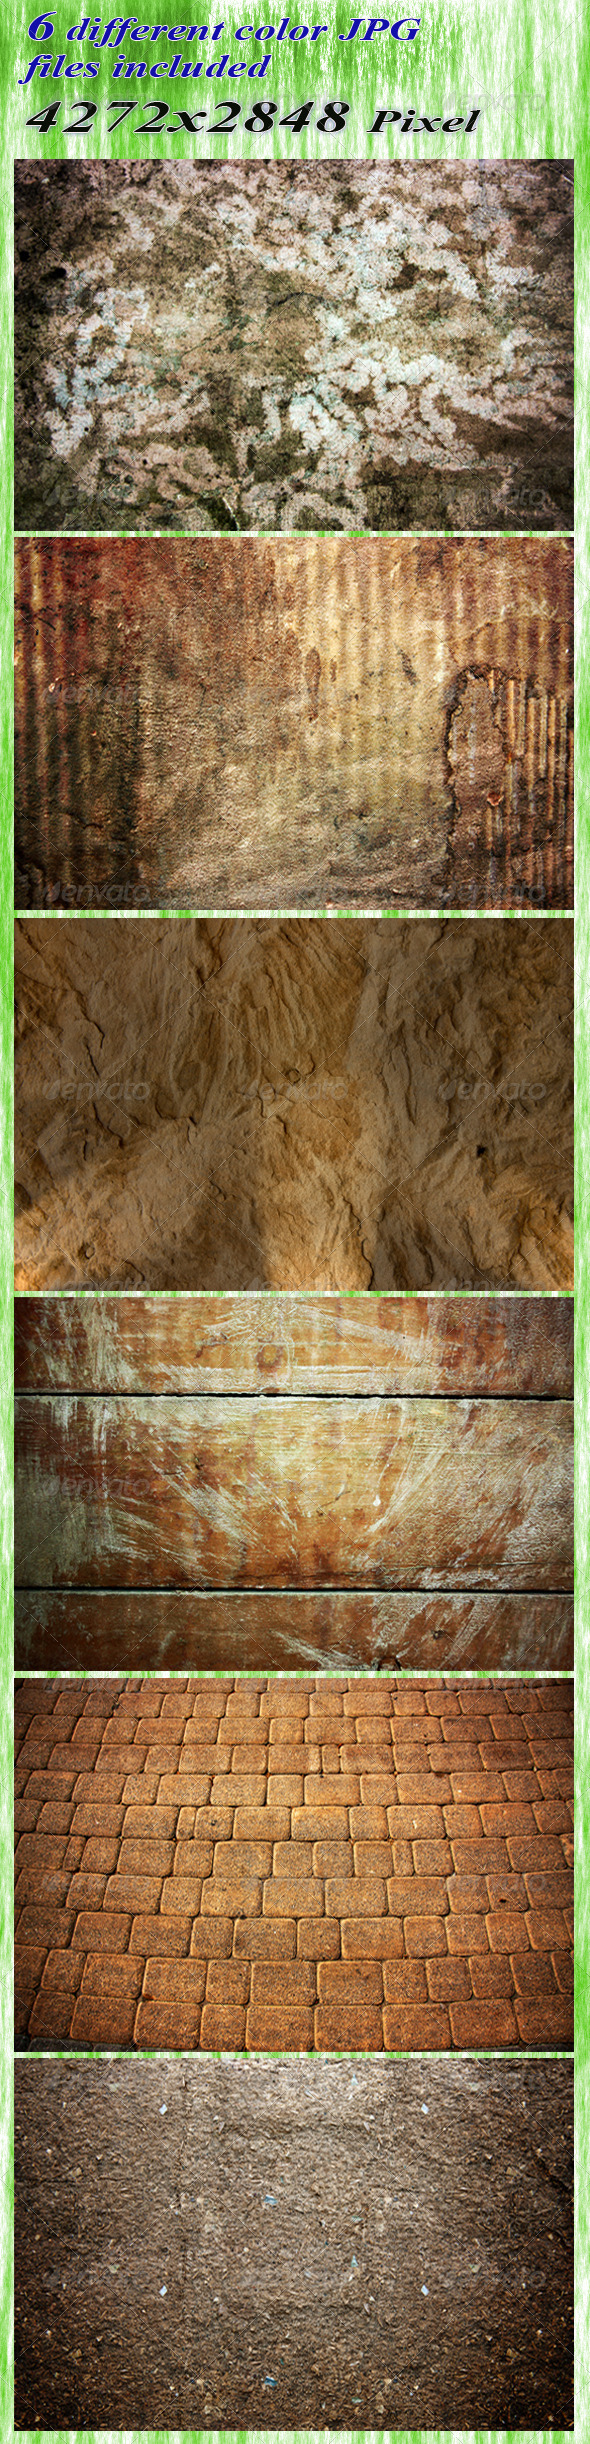 Natural backgrounds - Miscellaneous Textures